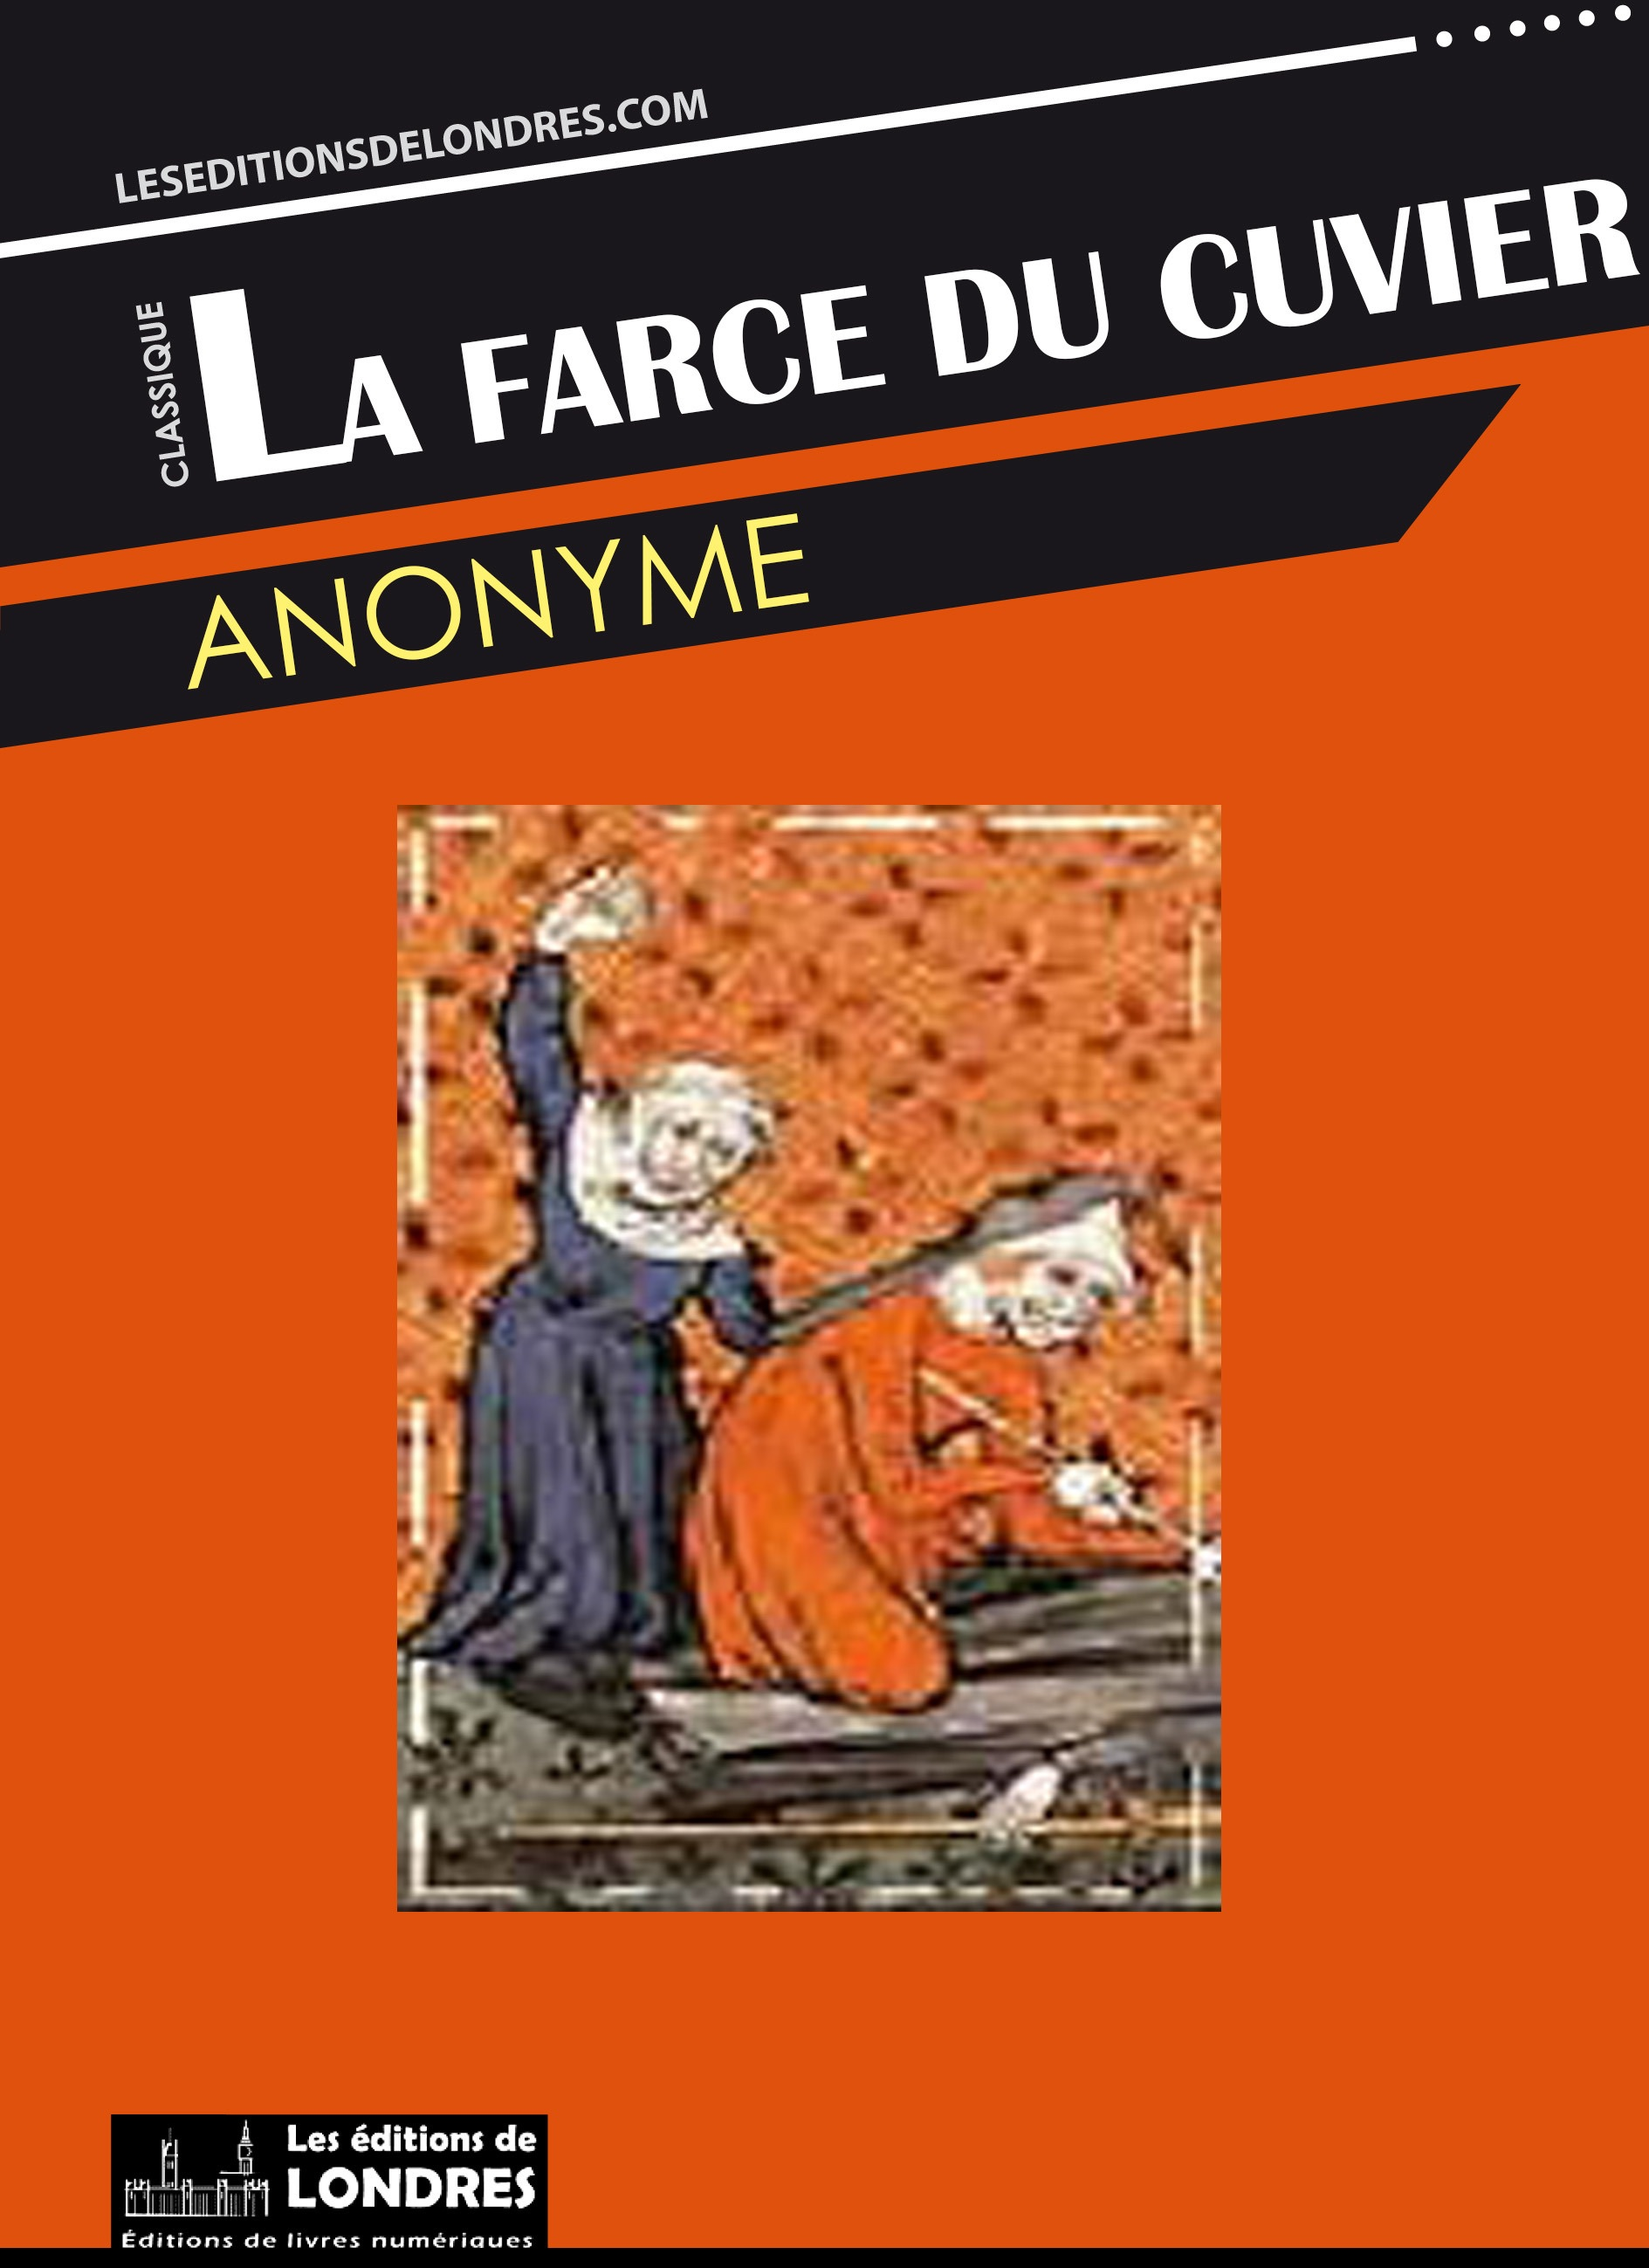 Copiar Libros De Ibooks A Pc La Farce Du Cuvier Por Anonymous En Ibooks